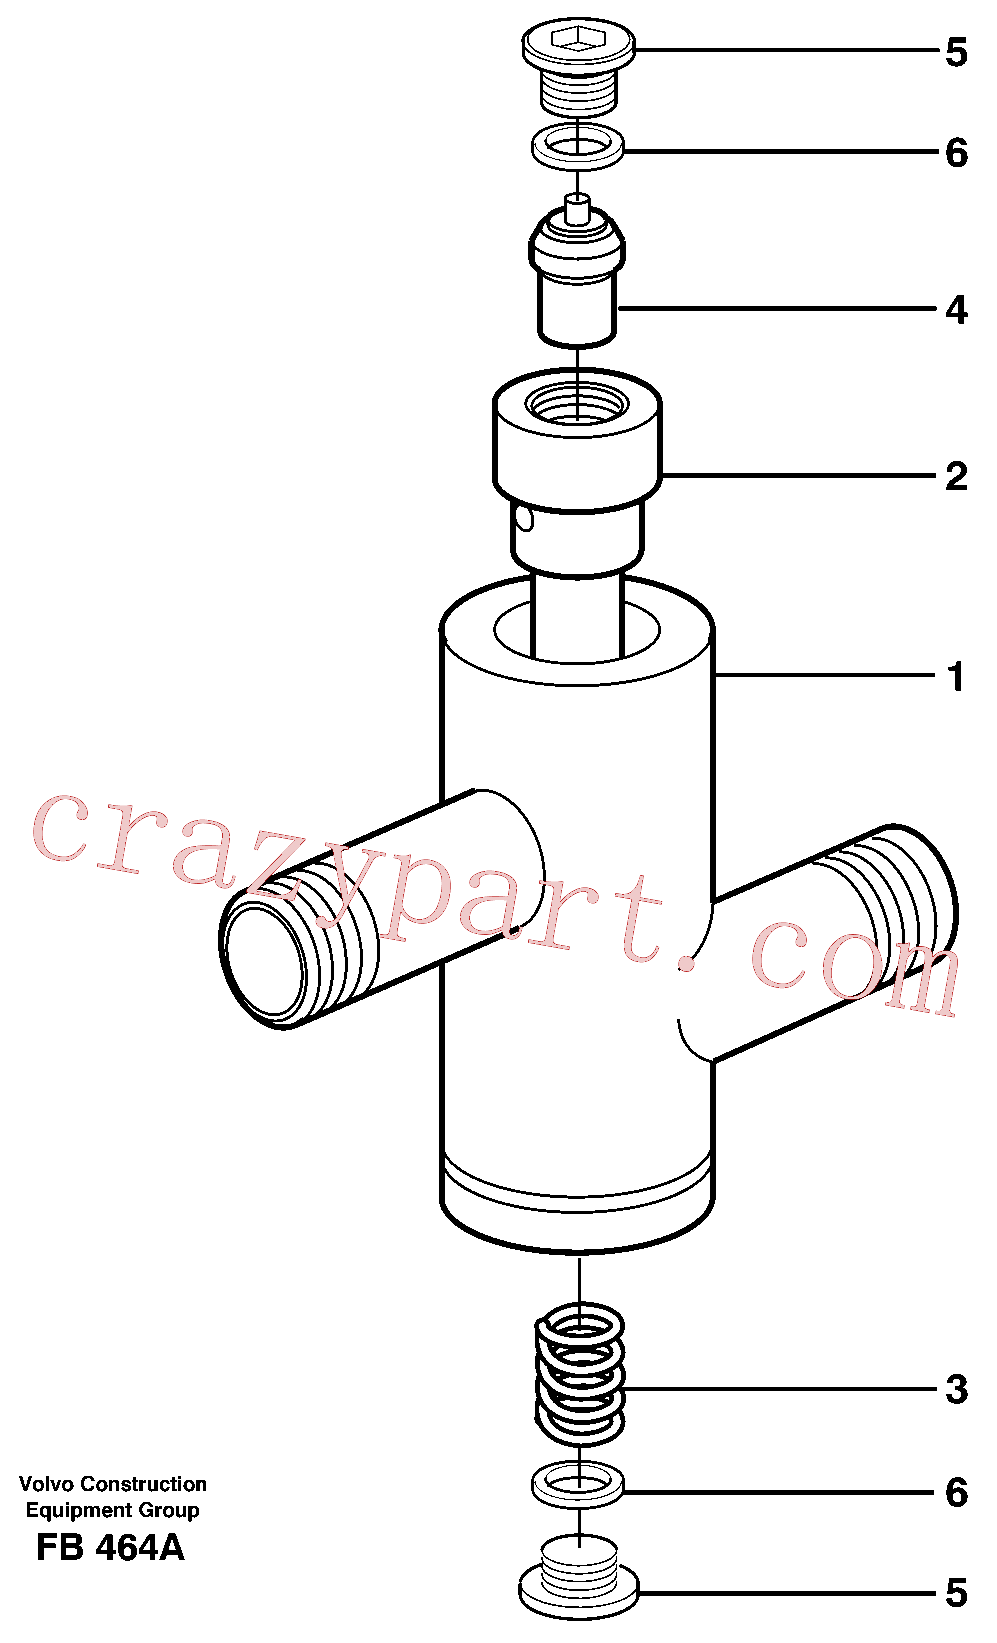 VOE14344088 for Volvo Thermostatic valve(FB464A assembly)